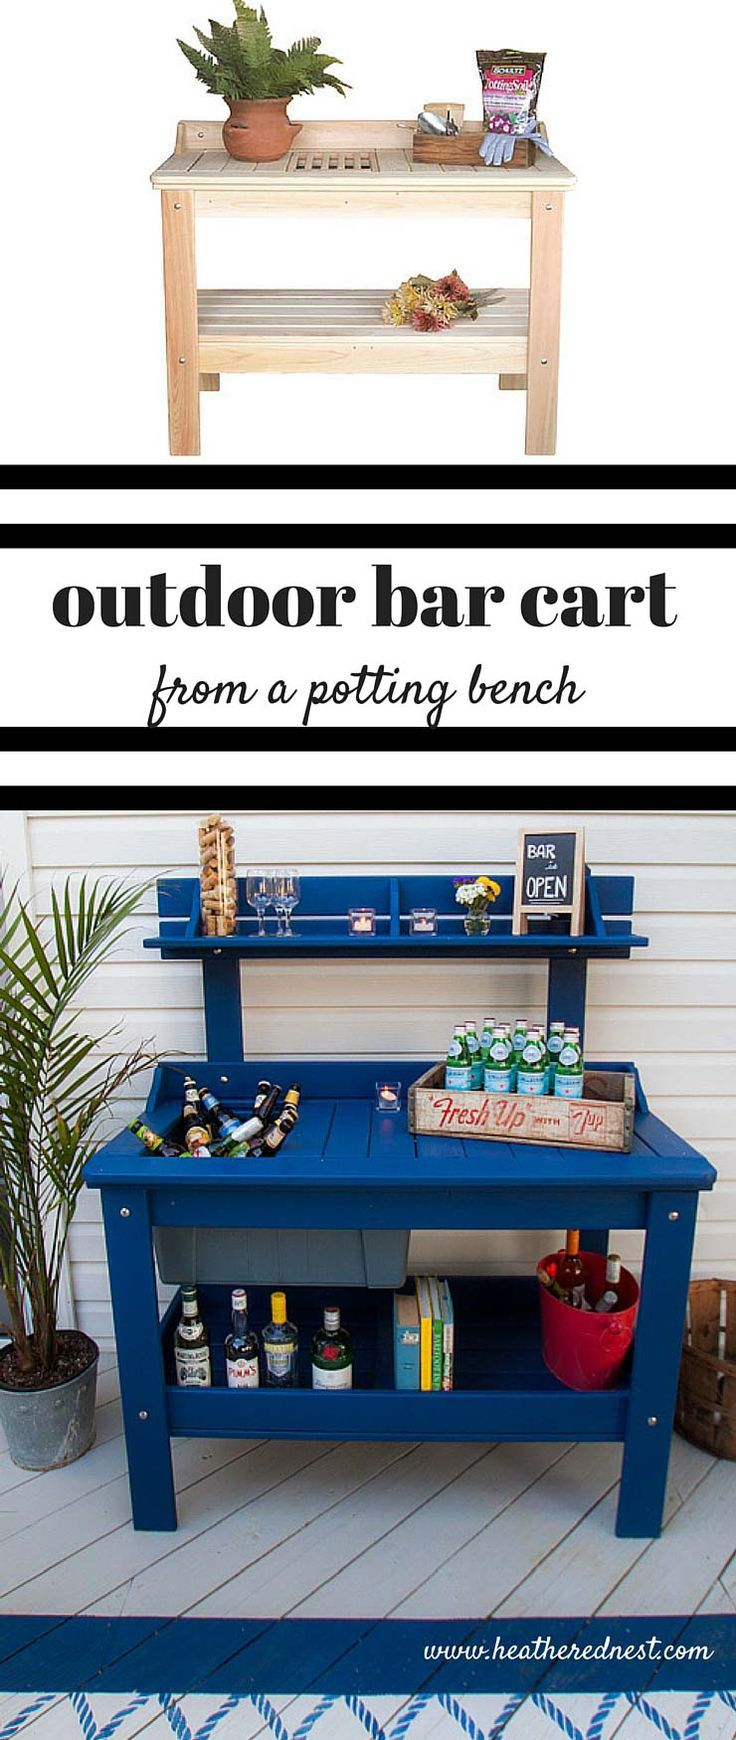 an outdoor potting table can be turned into the patio outdoor bar cart! Check out this one from www.heatherednest… what a fun